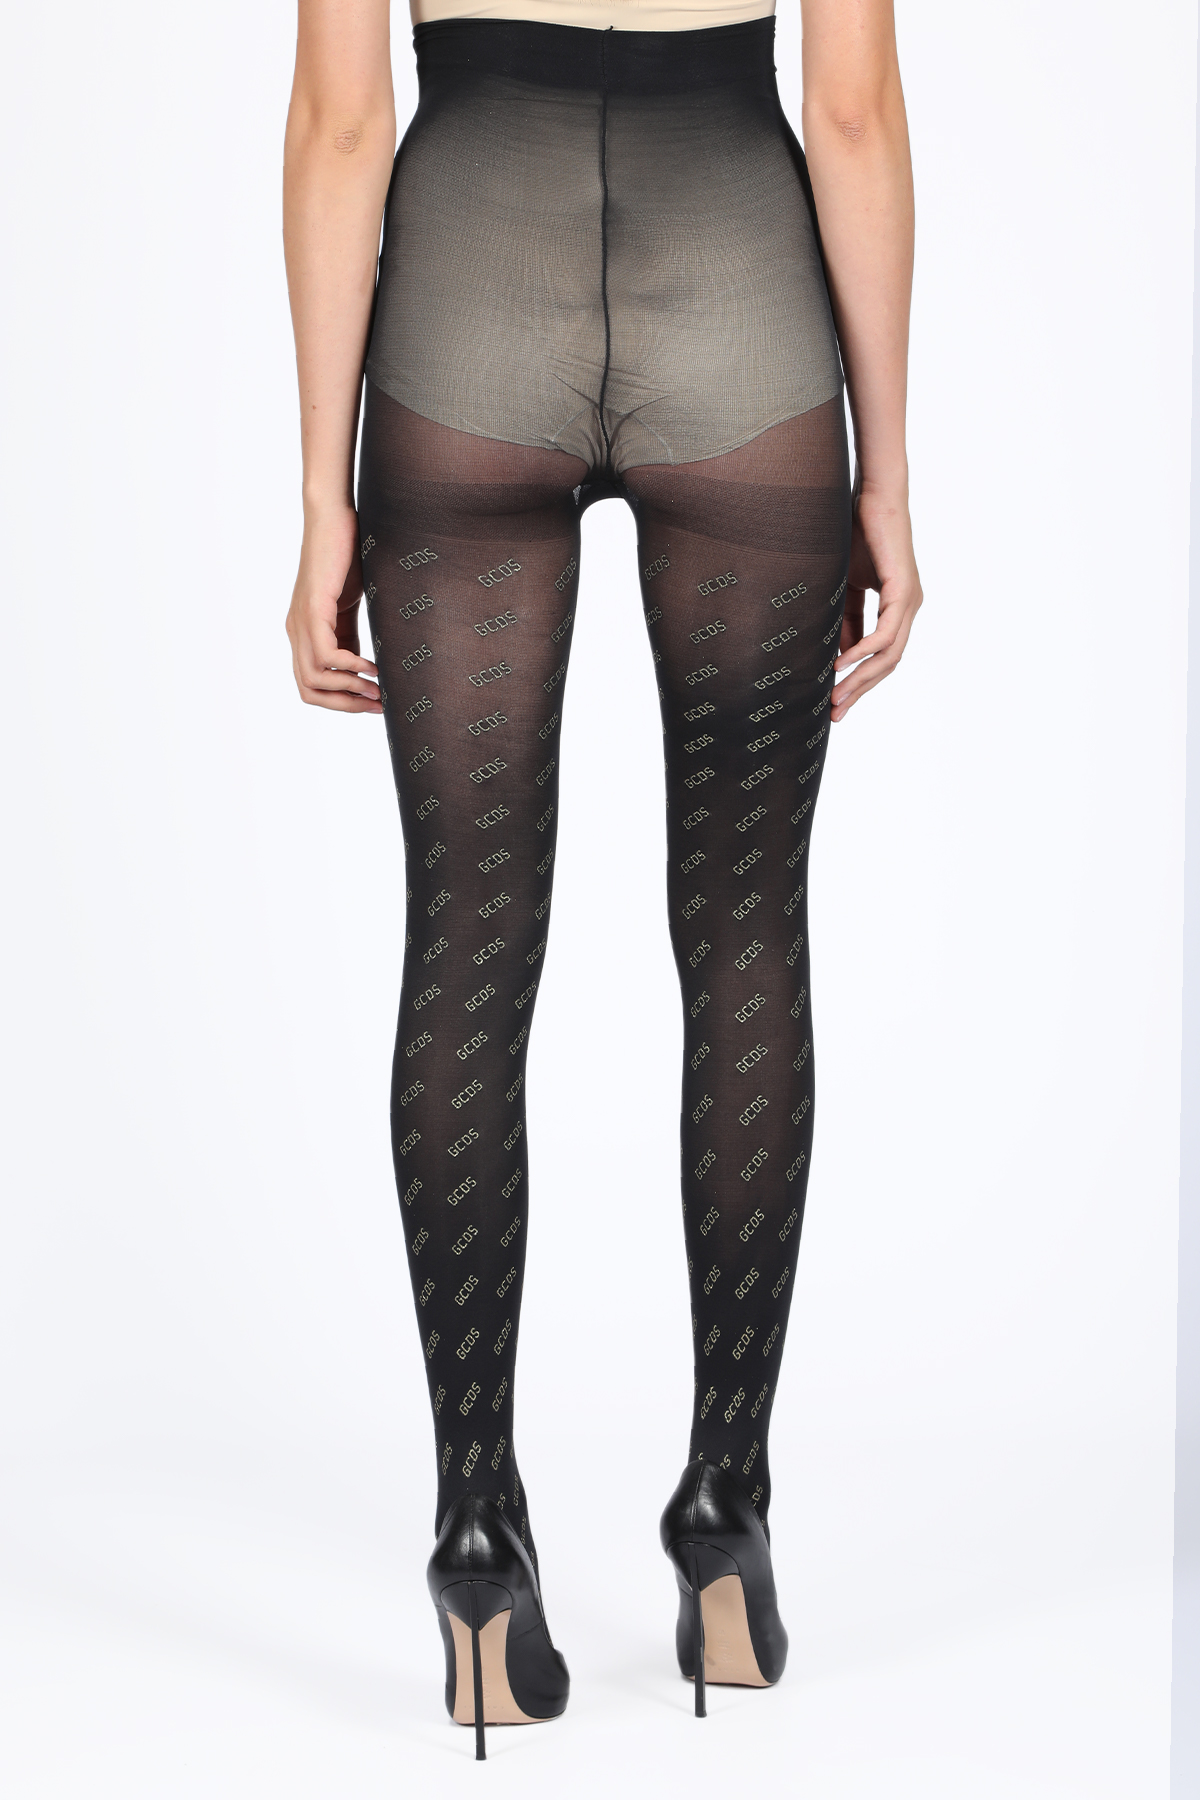 TIGHTS ALL OVER GCDS   33   FW20W010355 TIGHTS ALL OVER GOLDBLACK